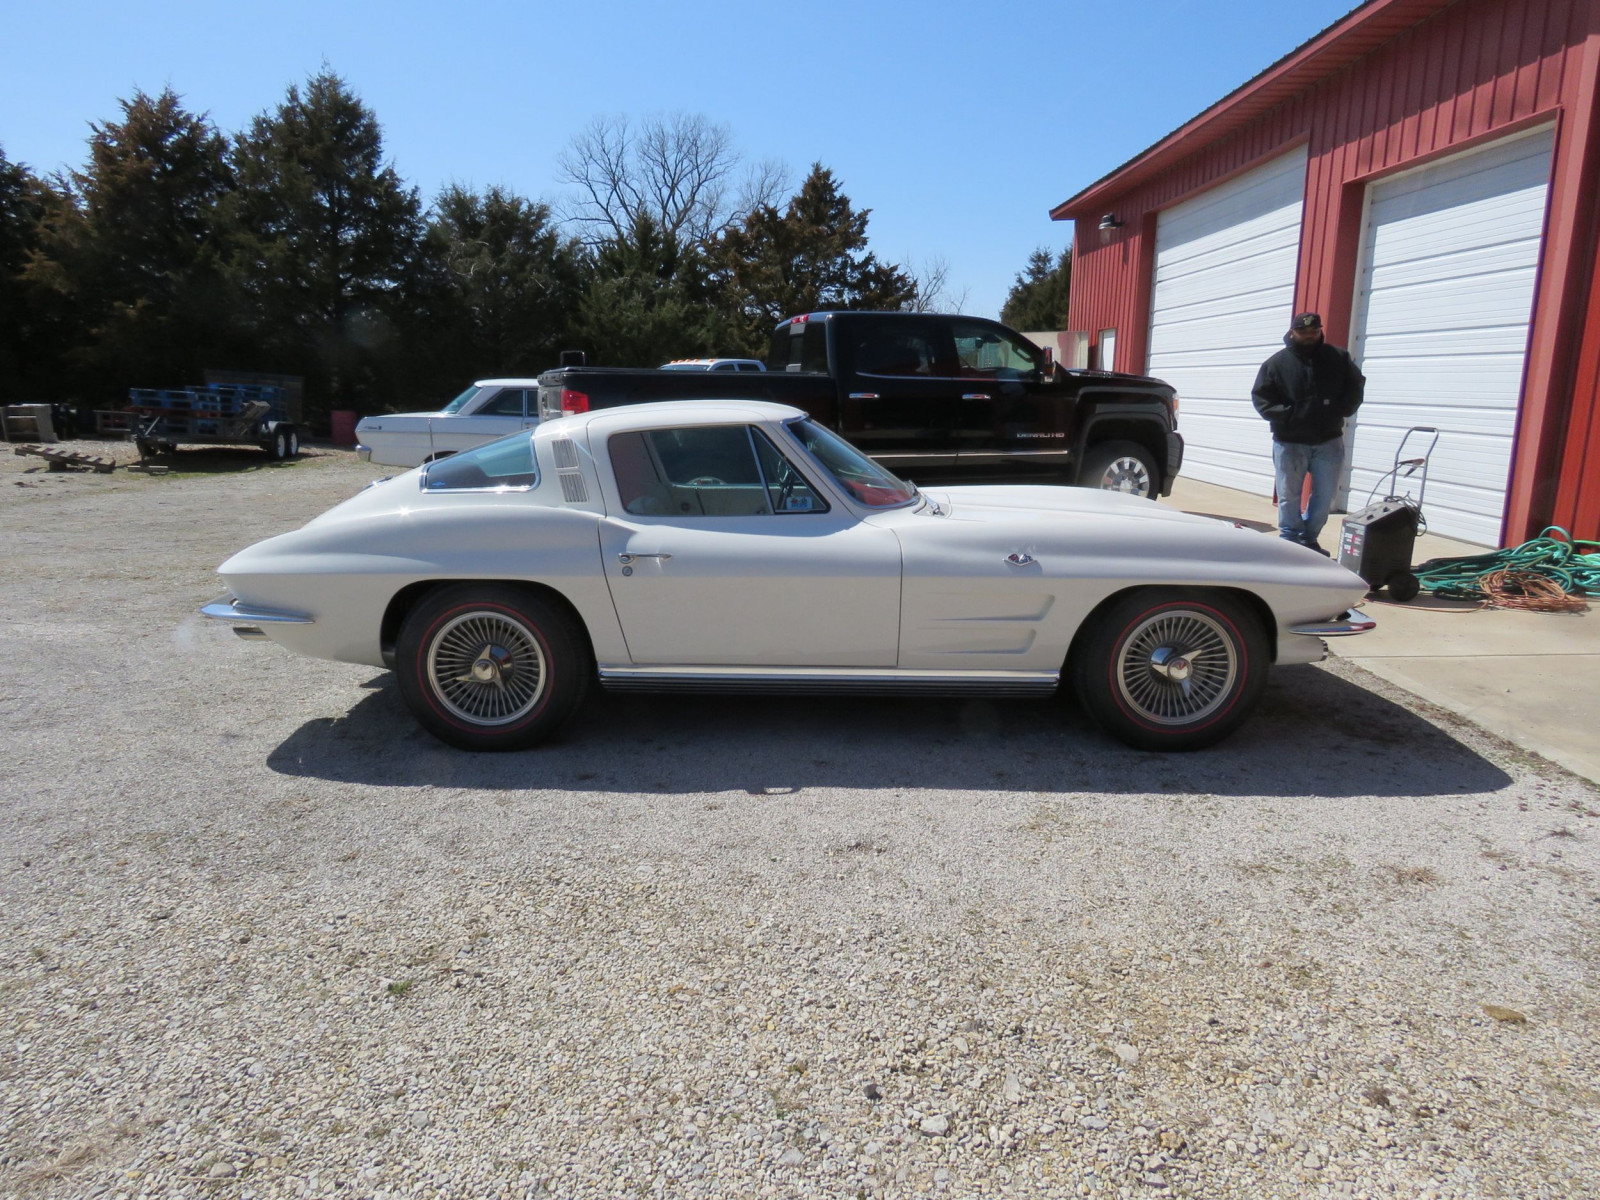 Beautiful 1964 Chevrolet Corvette Sting Ray Coupe - Image 4